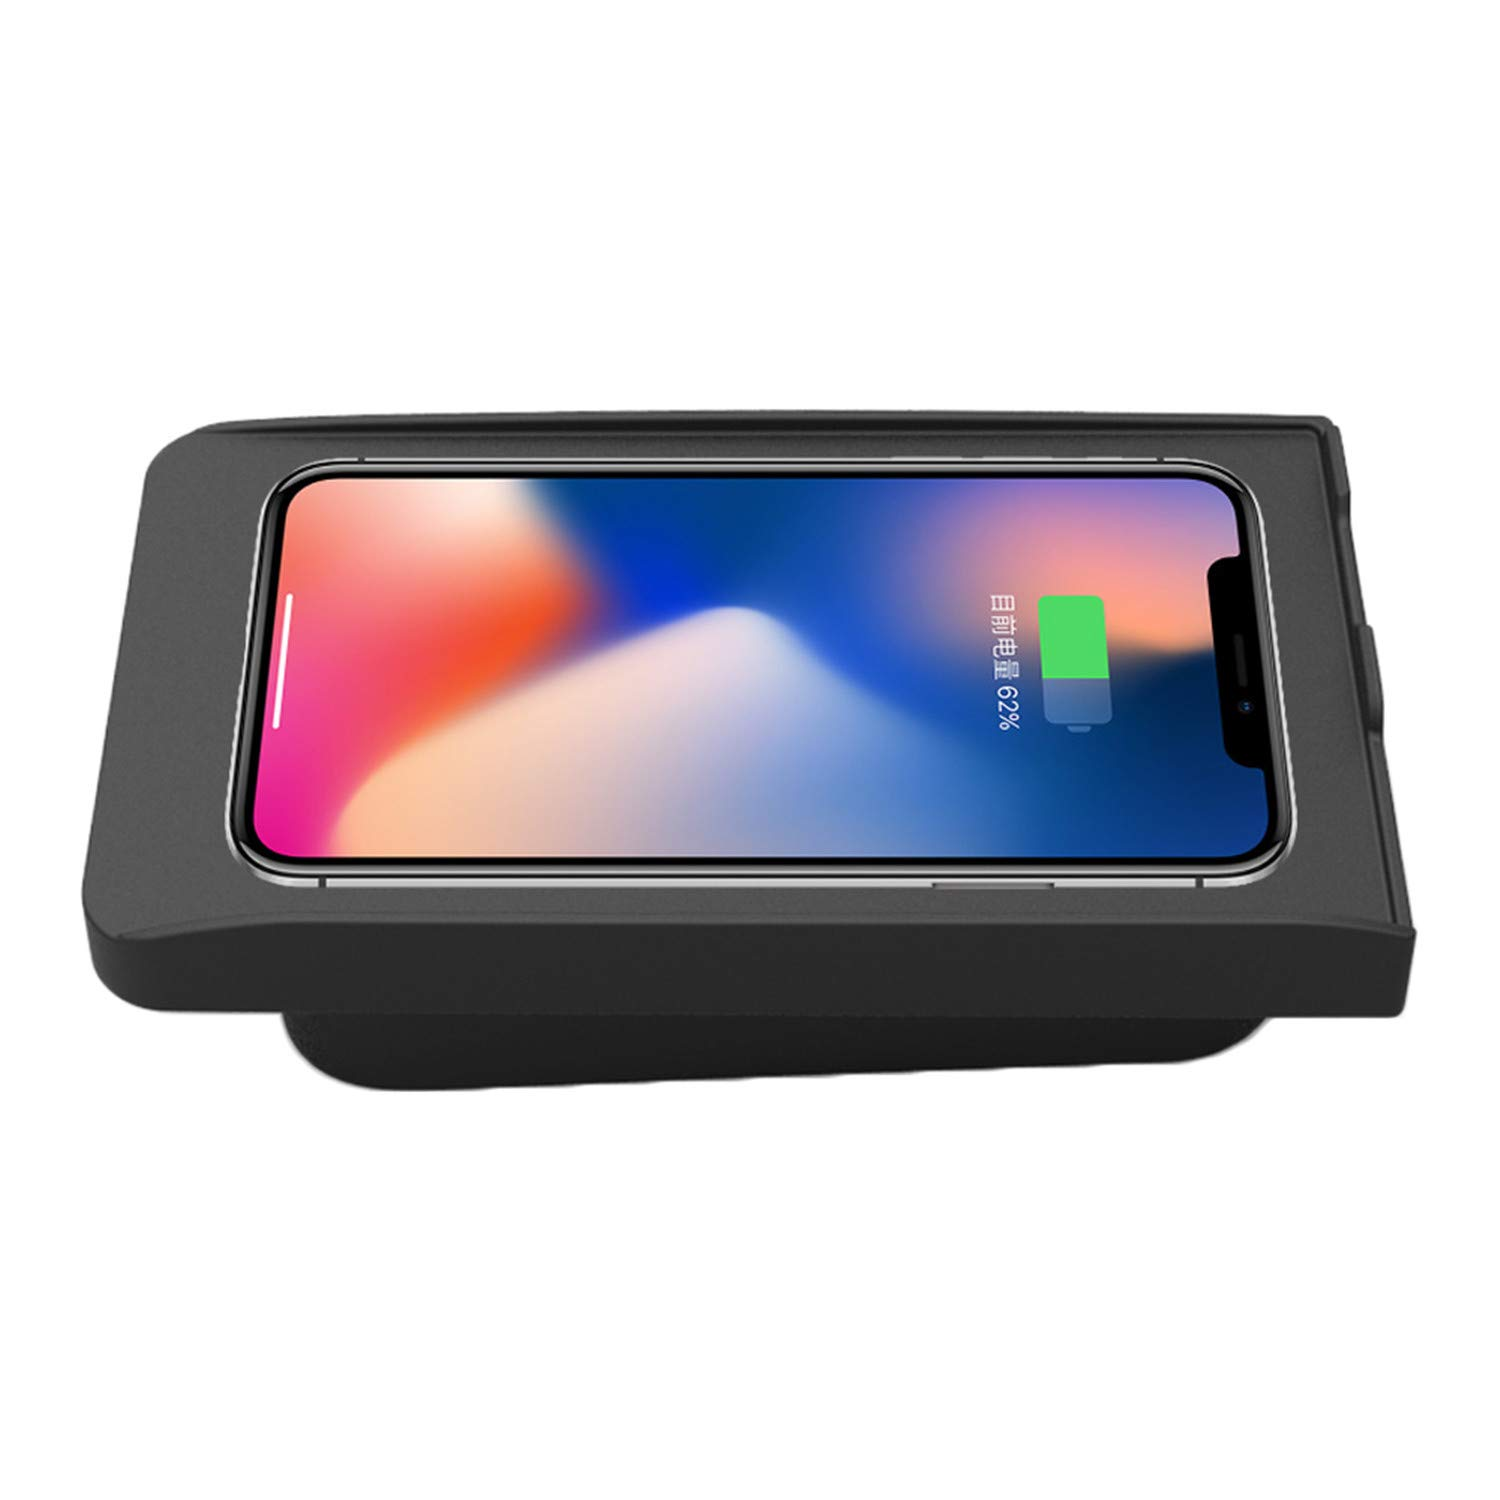 ZWNAV Wireless Car Charger Mount for Volvo XC90/XC60/S90L/V90 2017-2018, Qi Certified, 10W Fast Charging Compatible with iPhone XS/XR/X/8/8+, Samsung S9+ /S9 /S8/S7/Note 8 and Qi Enabled Devices by ZWNAV